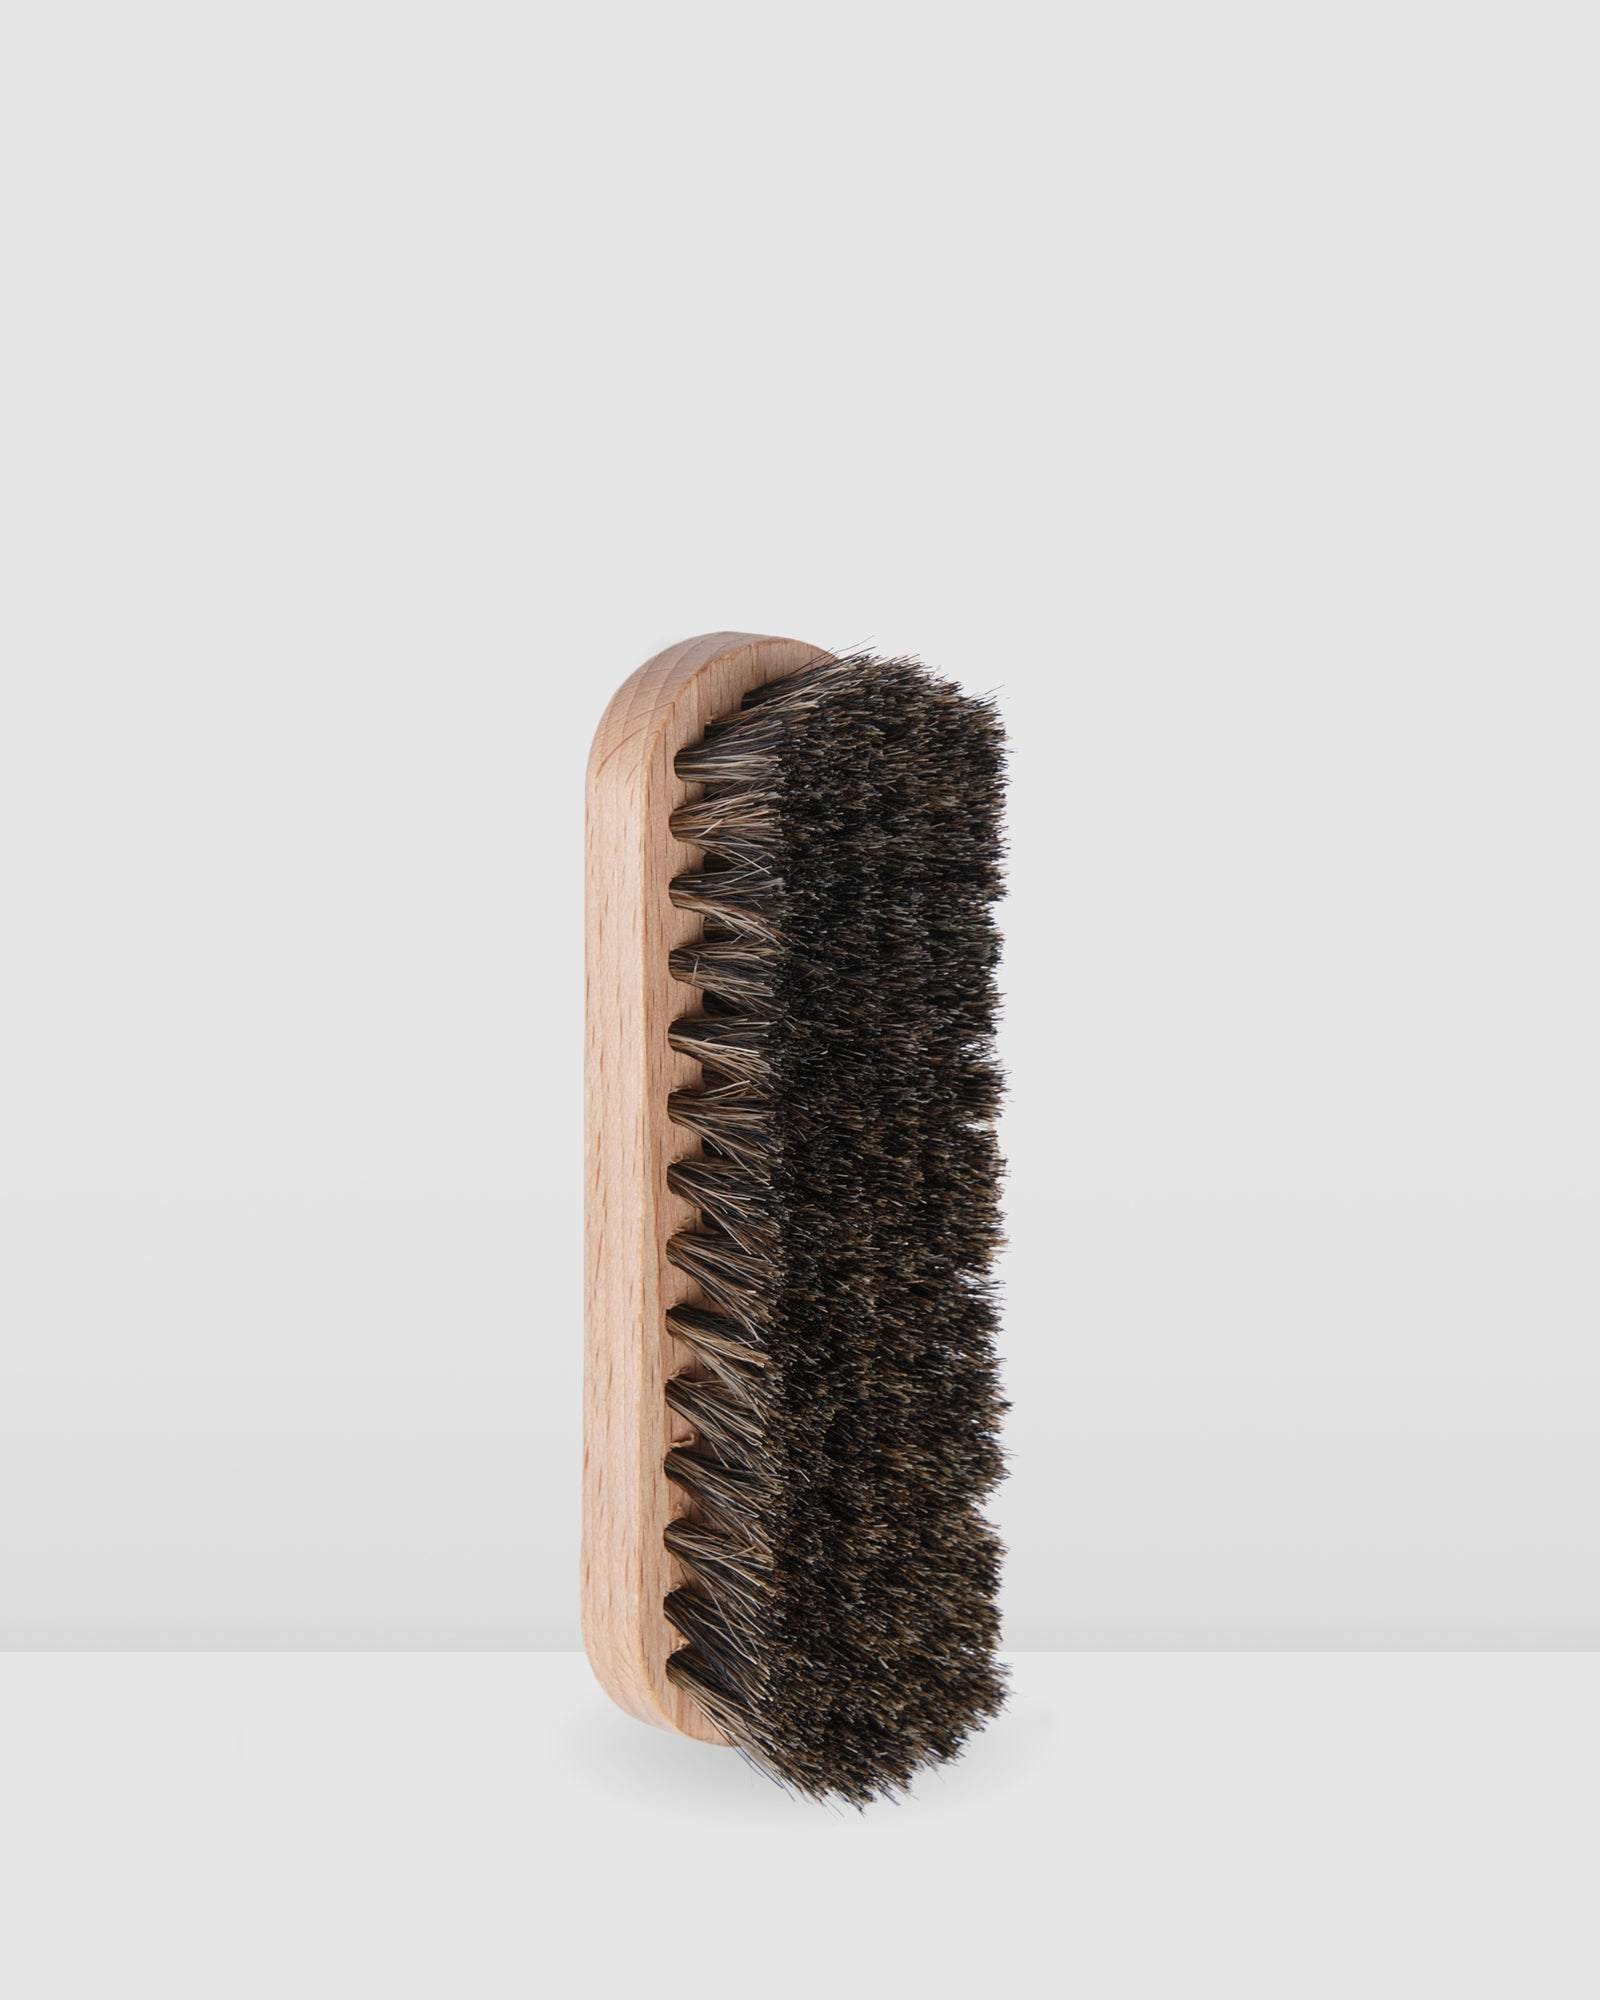 MEDIUM SHOE BRUSH 2019